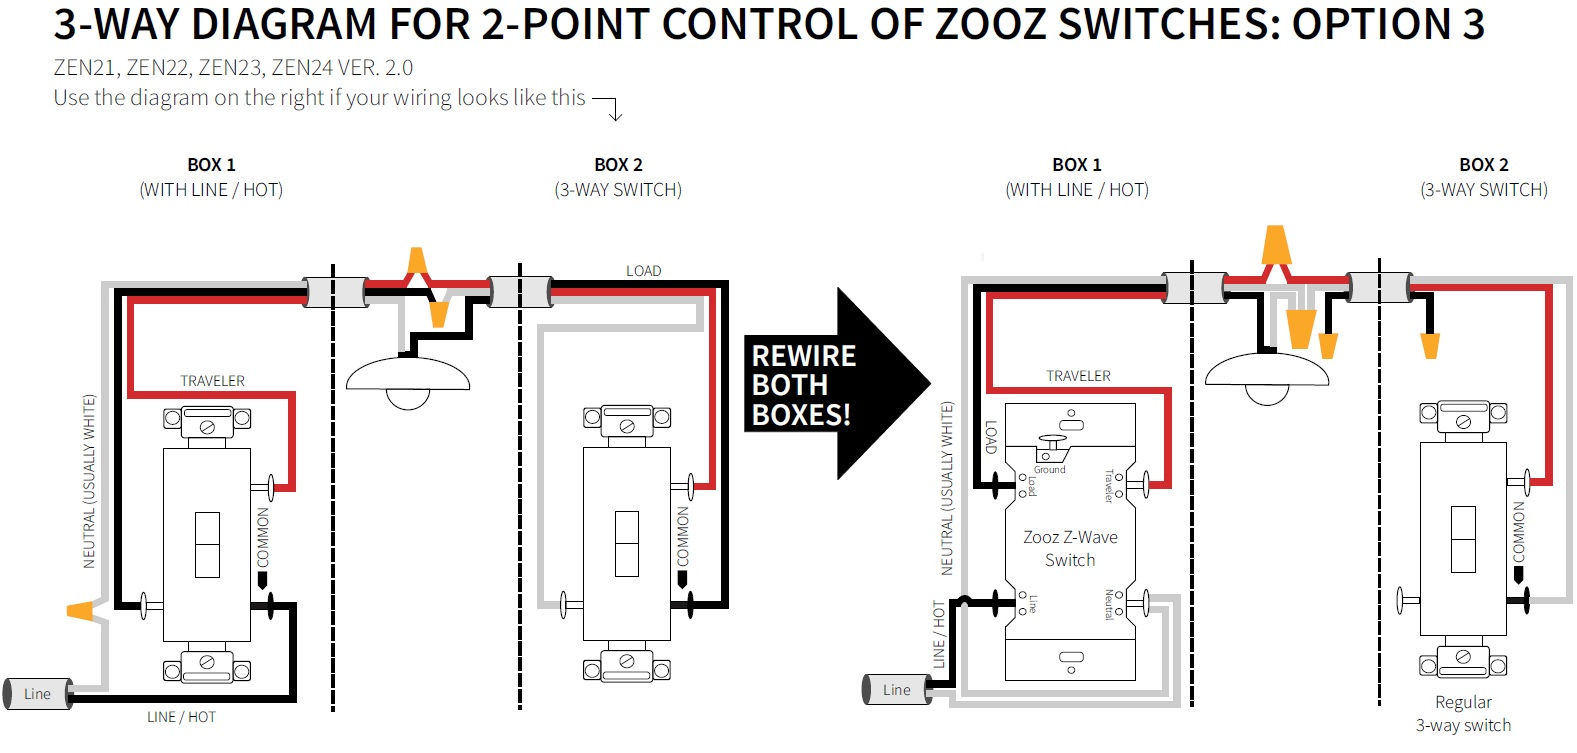 How To Wire Your Zooz Switch In A 3-Way Configuration - Zooz - Wiring Diagram 3 Way Switch